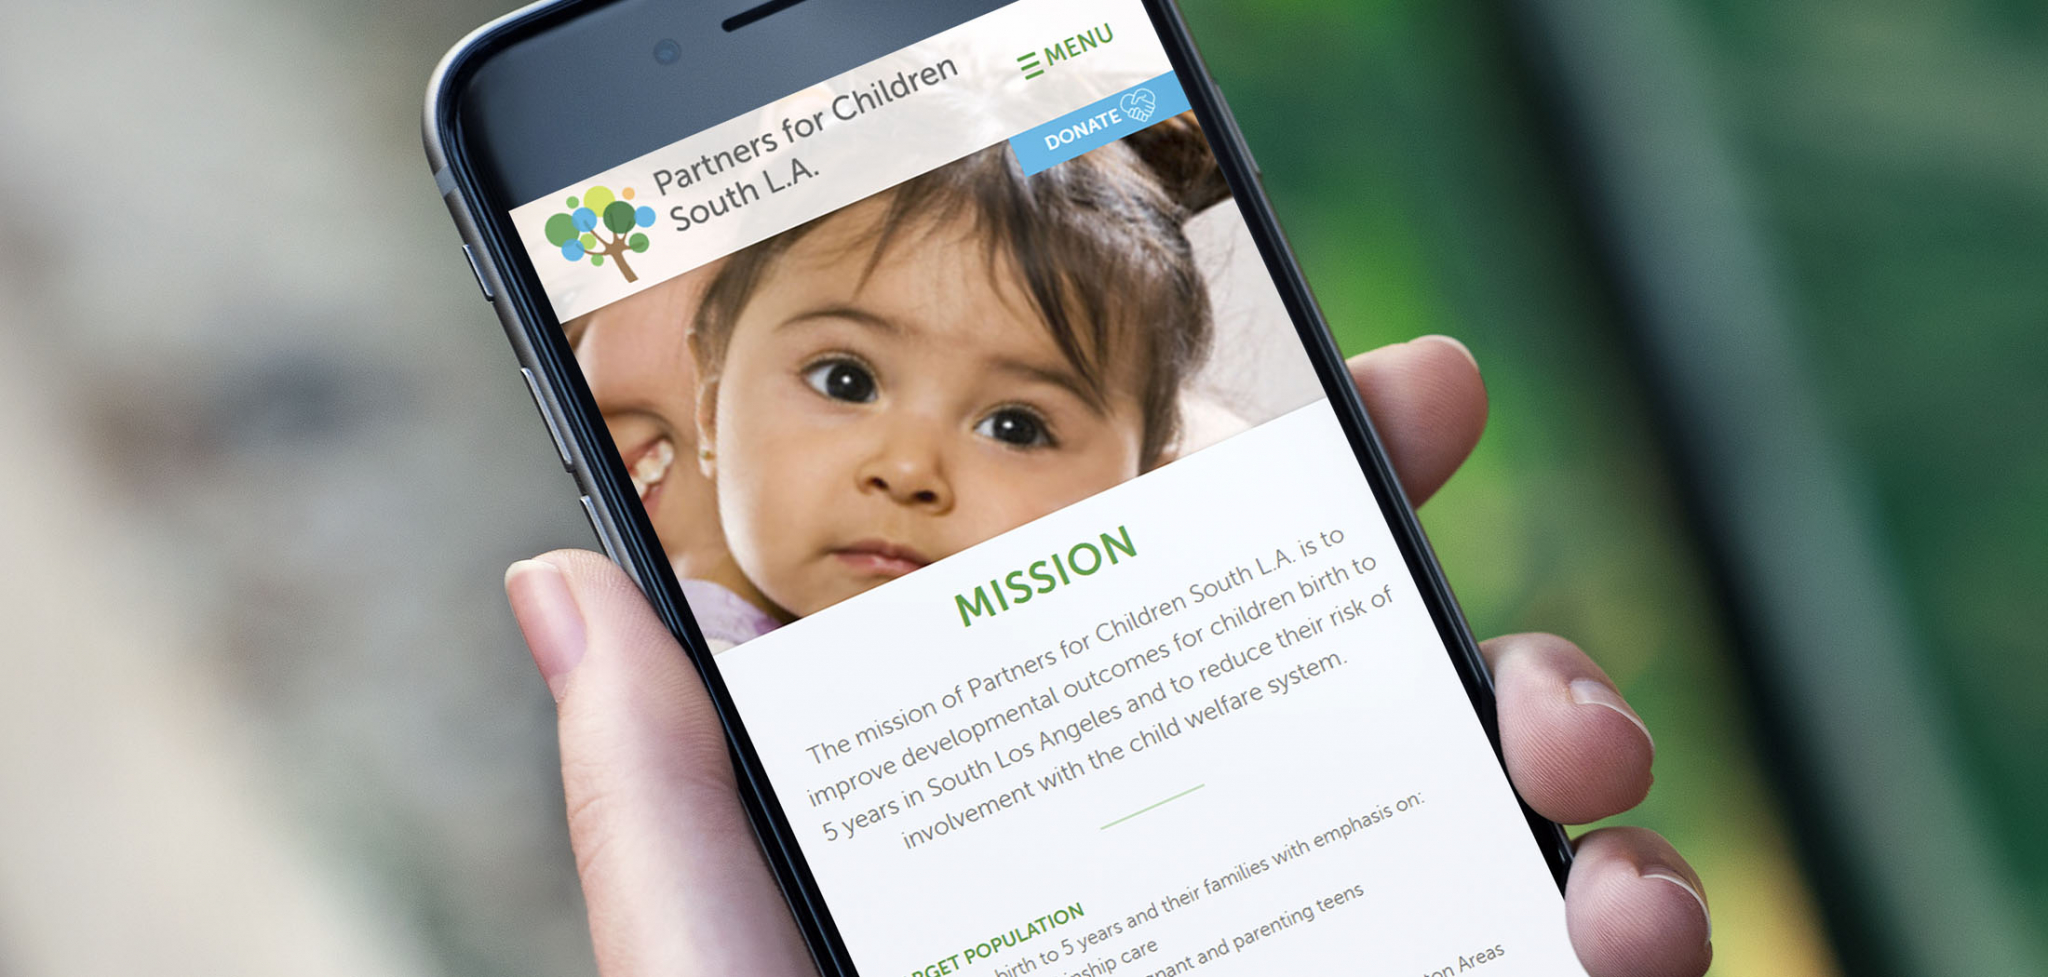 Early Child Development Website Designs for Mobile